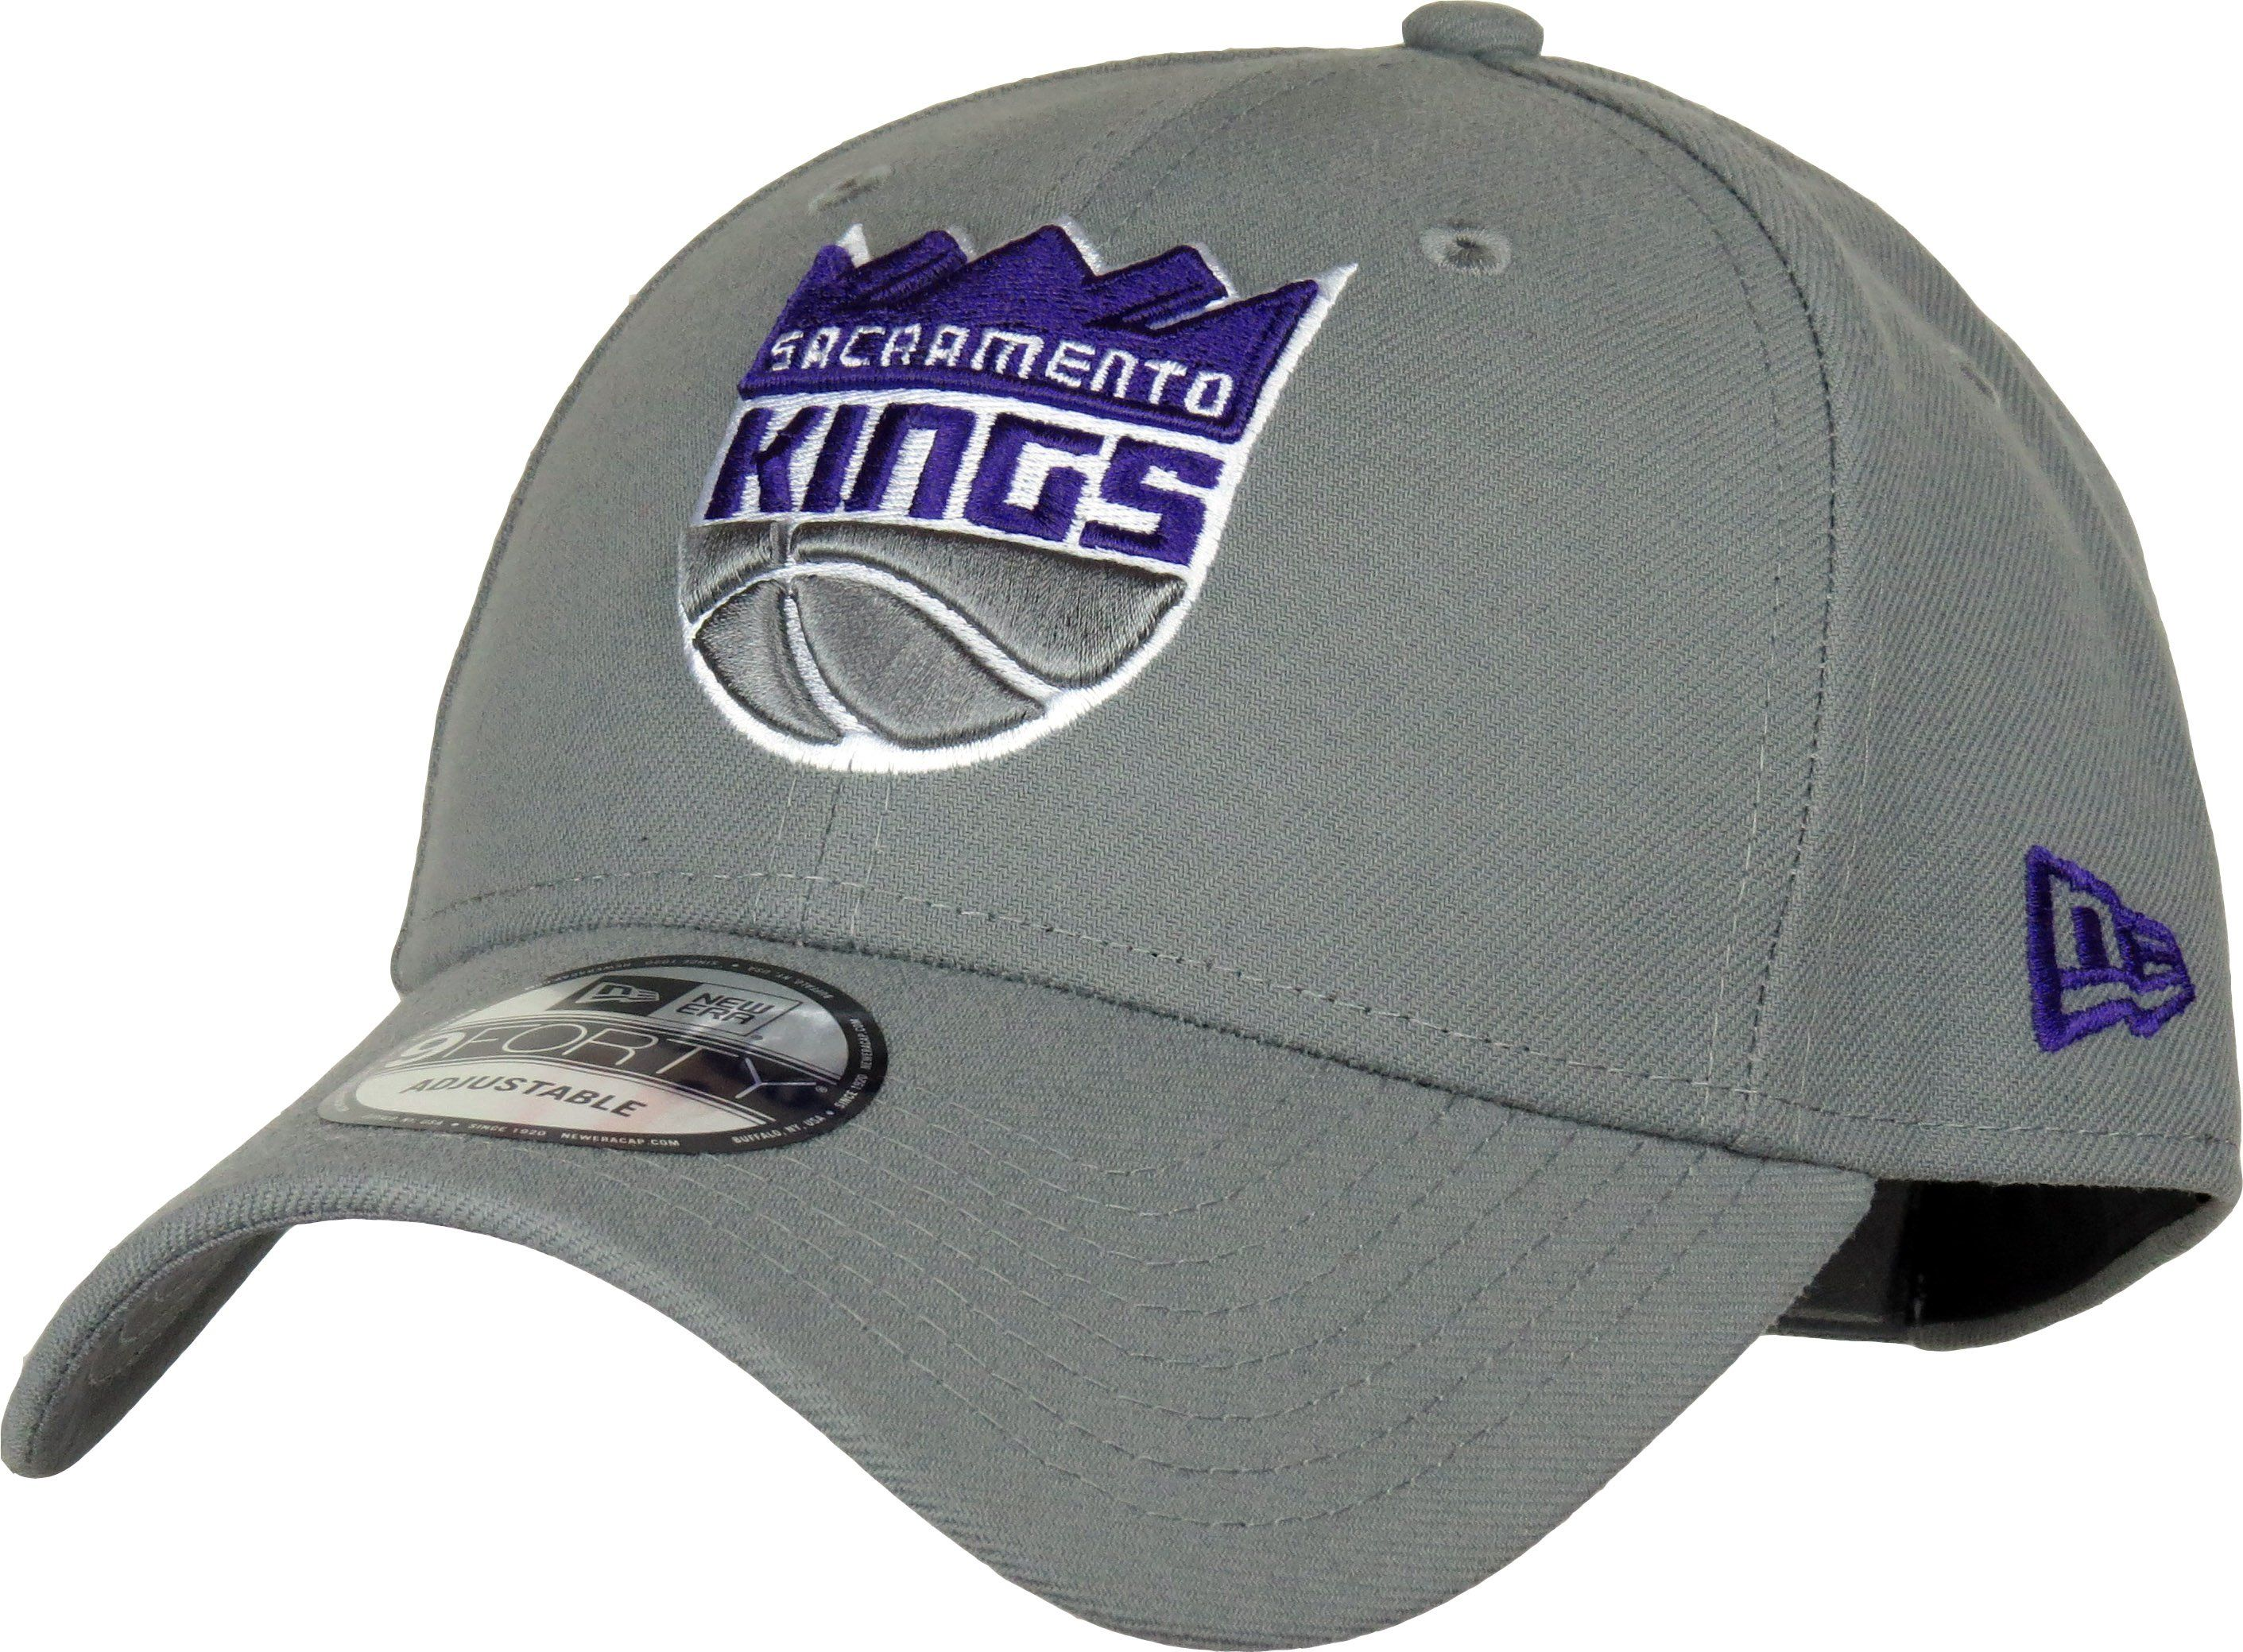 quality design 9a937 a1581 New Era 9Forty NBA The League Adjustable Team Cap. Grey with the Sacramento  Kings front logo, the New Era side logo, and the KINGS rear strap logo.